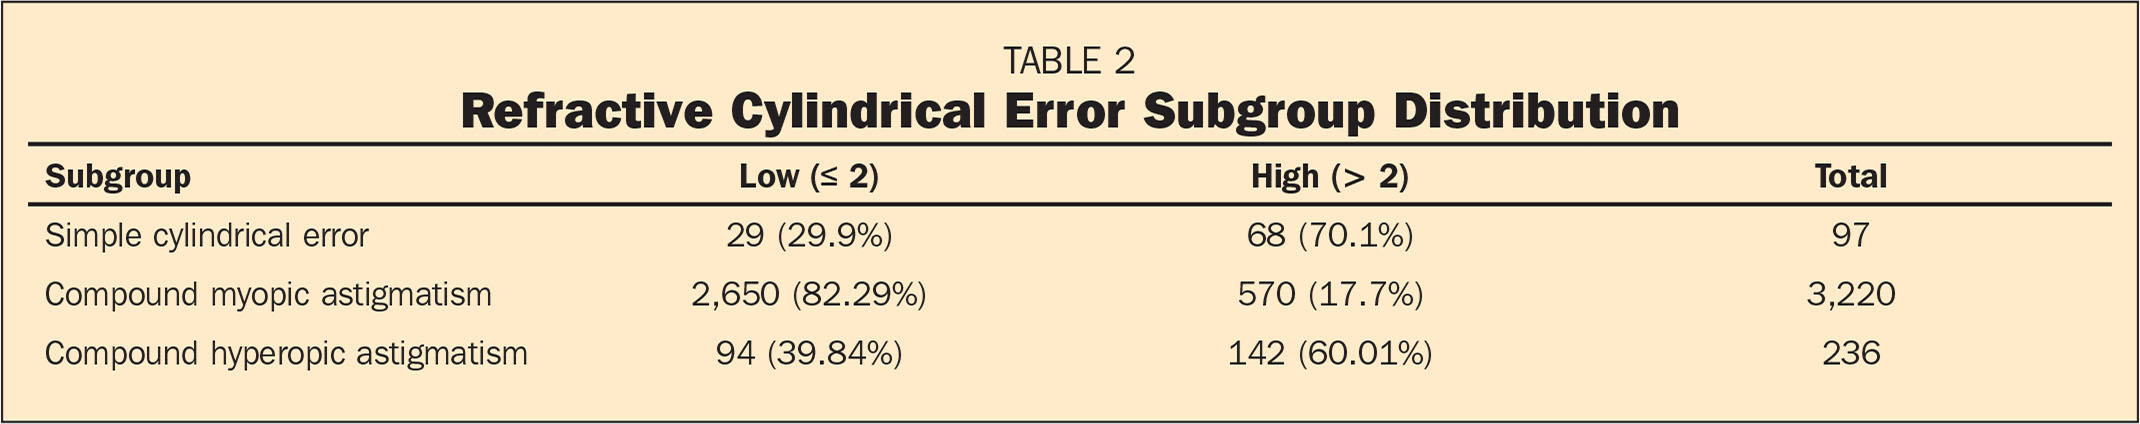 Refractive Cylindrical Error Subgroup Distribution